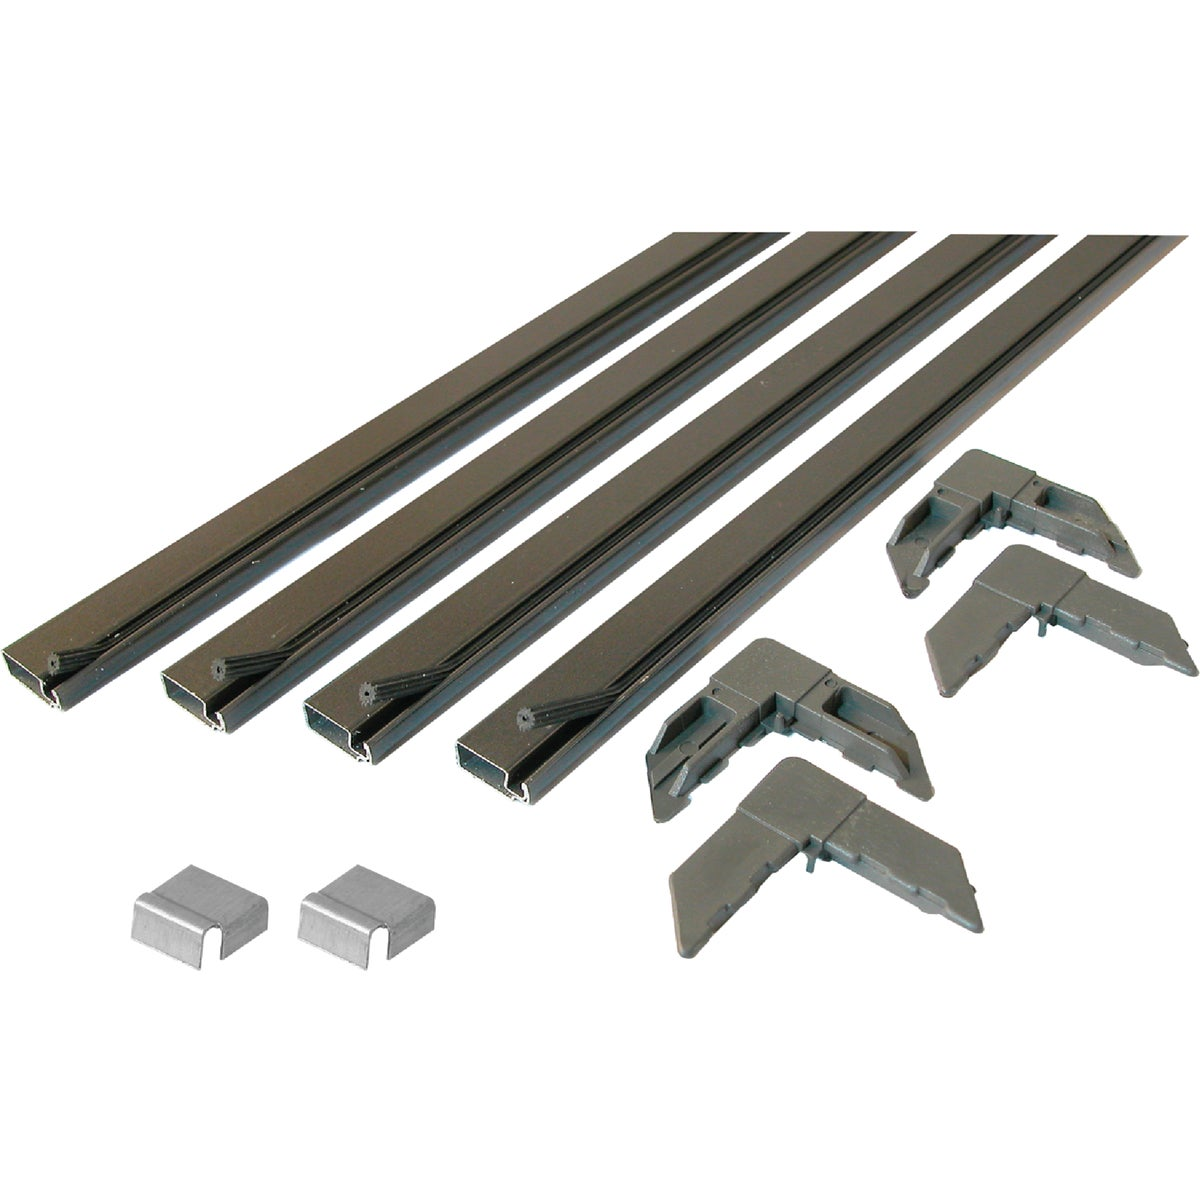 3/4X5/16X4' FRAME KIT - PL7807 by Prime Line Products